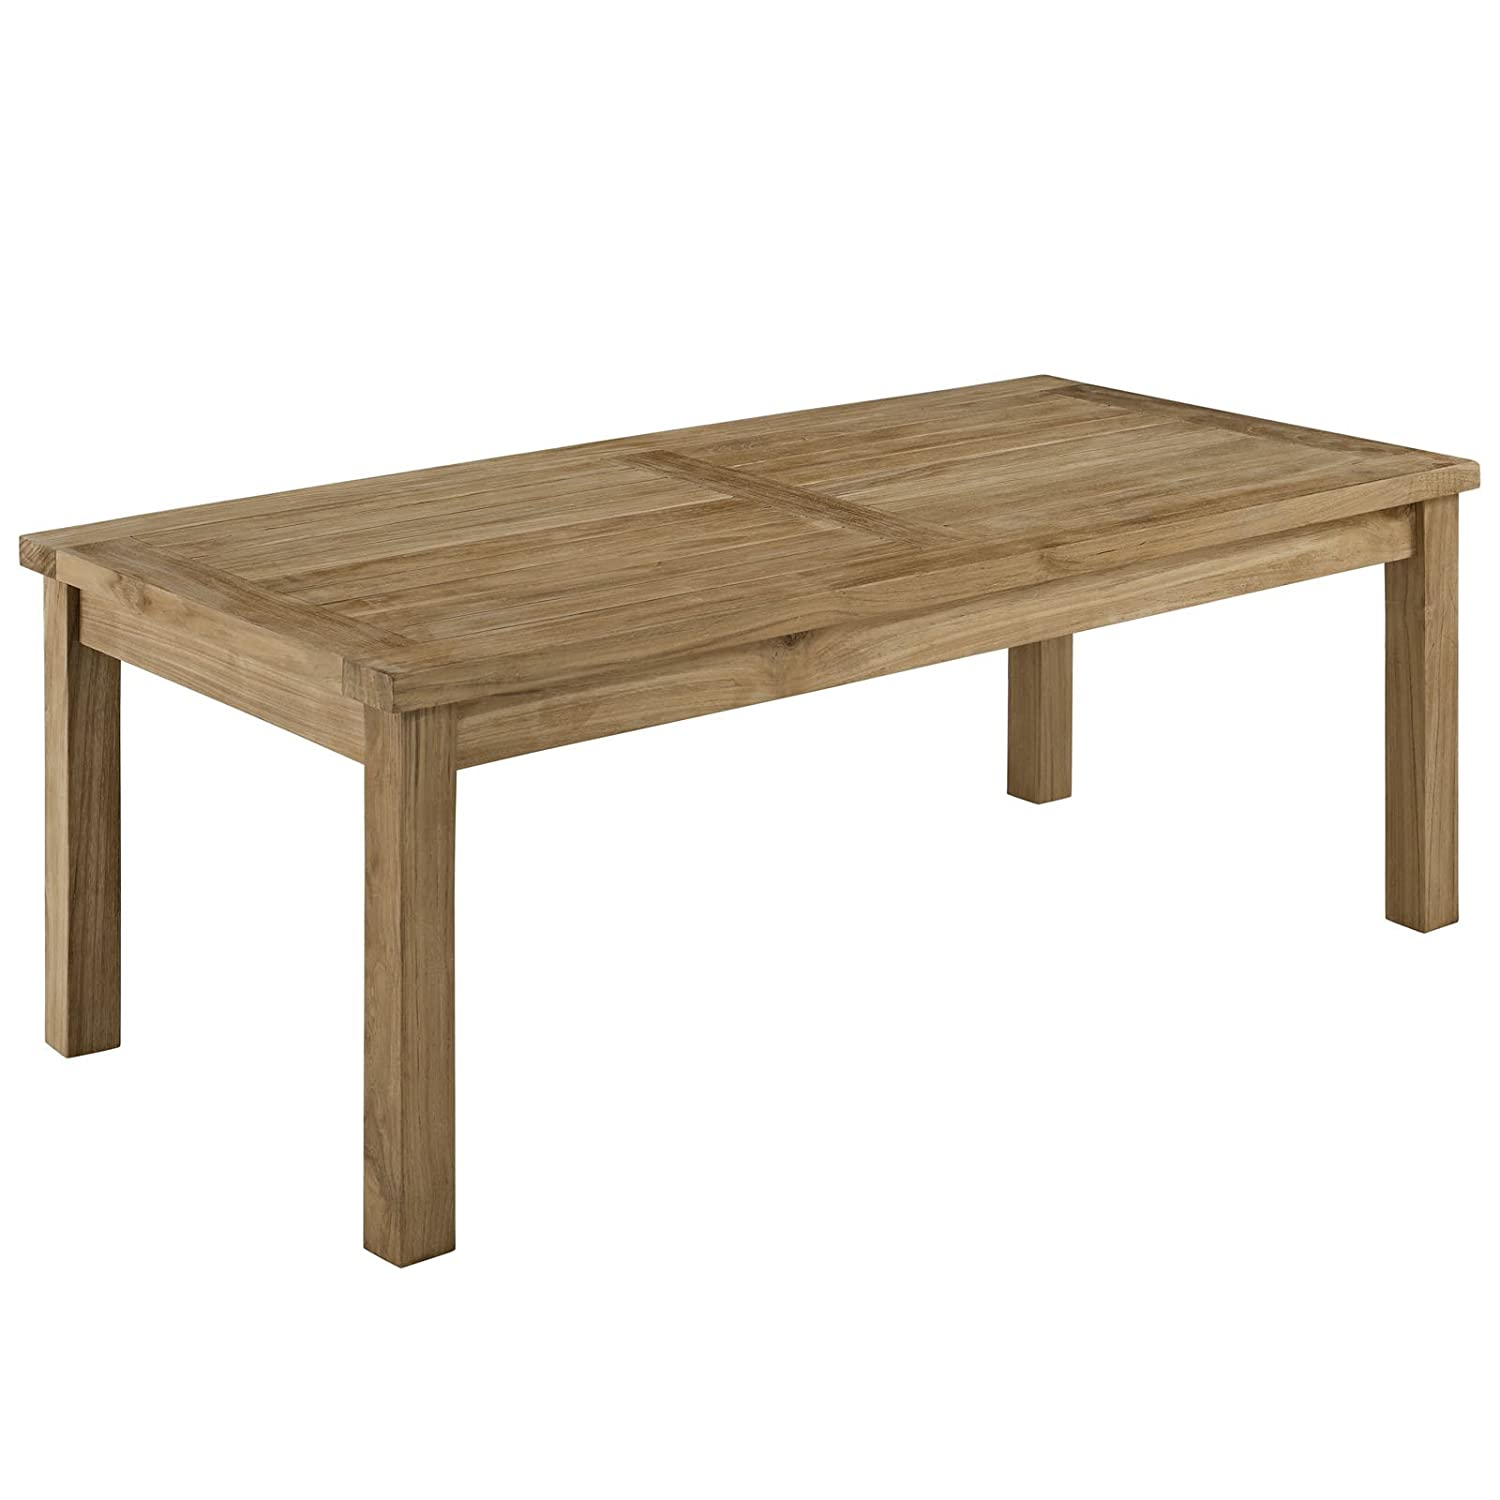 Amazon com modway marina teak wood outdoor patio rectangle coffee table in natural garden outdoor